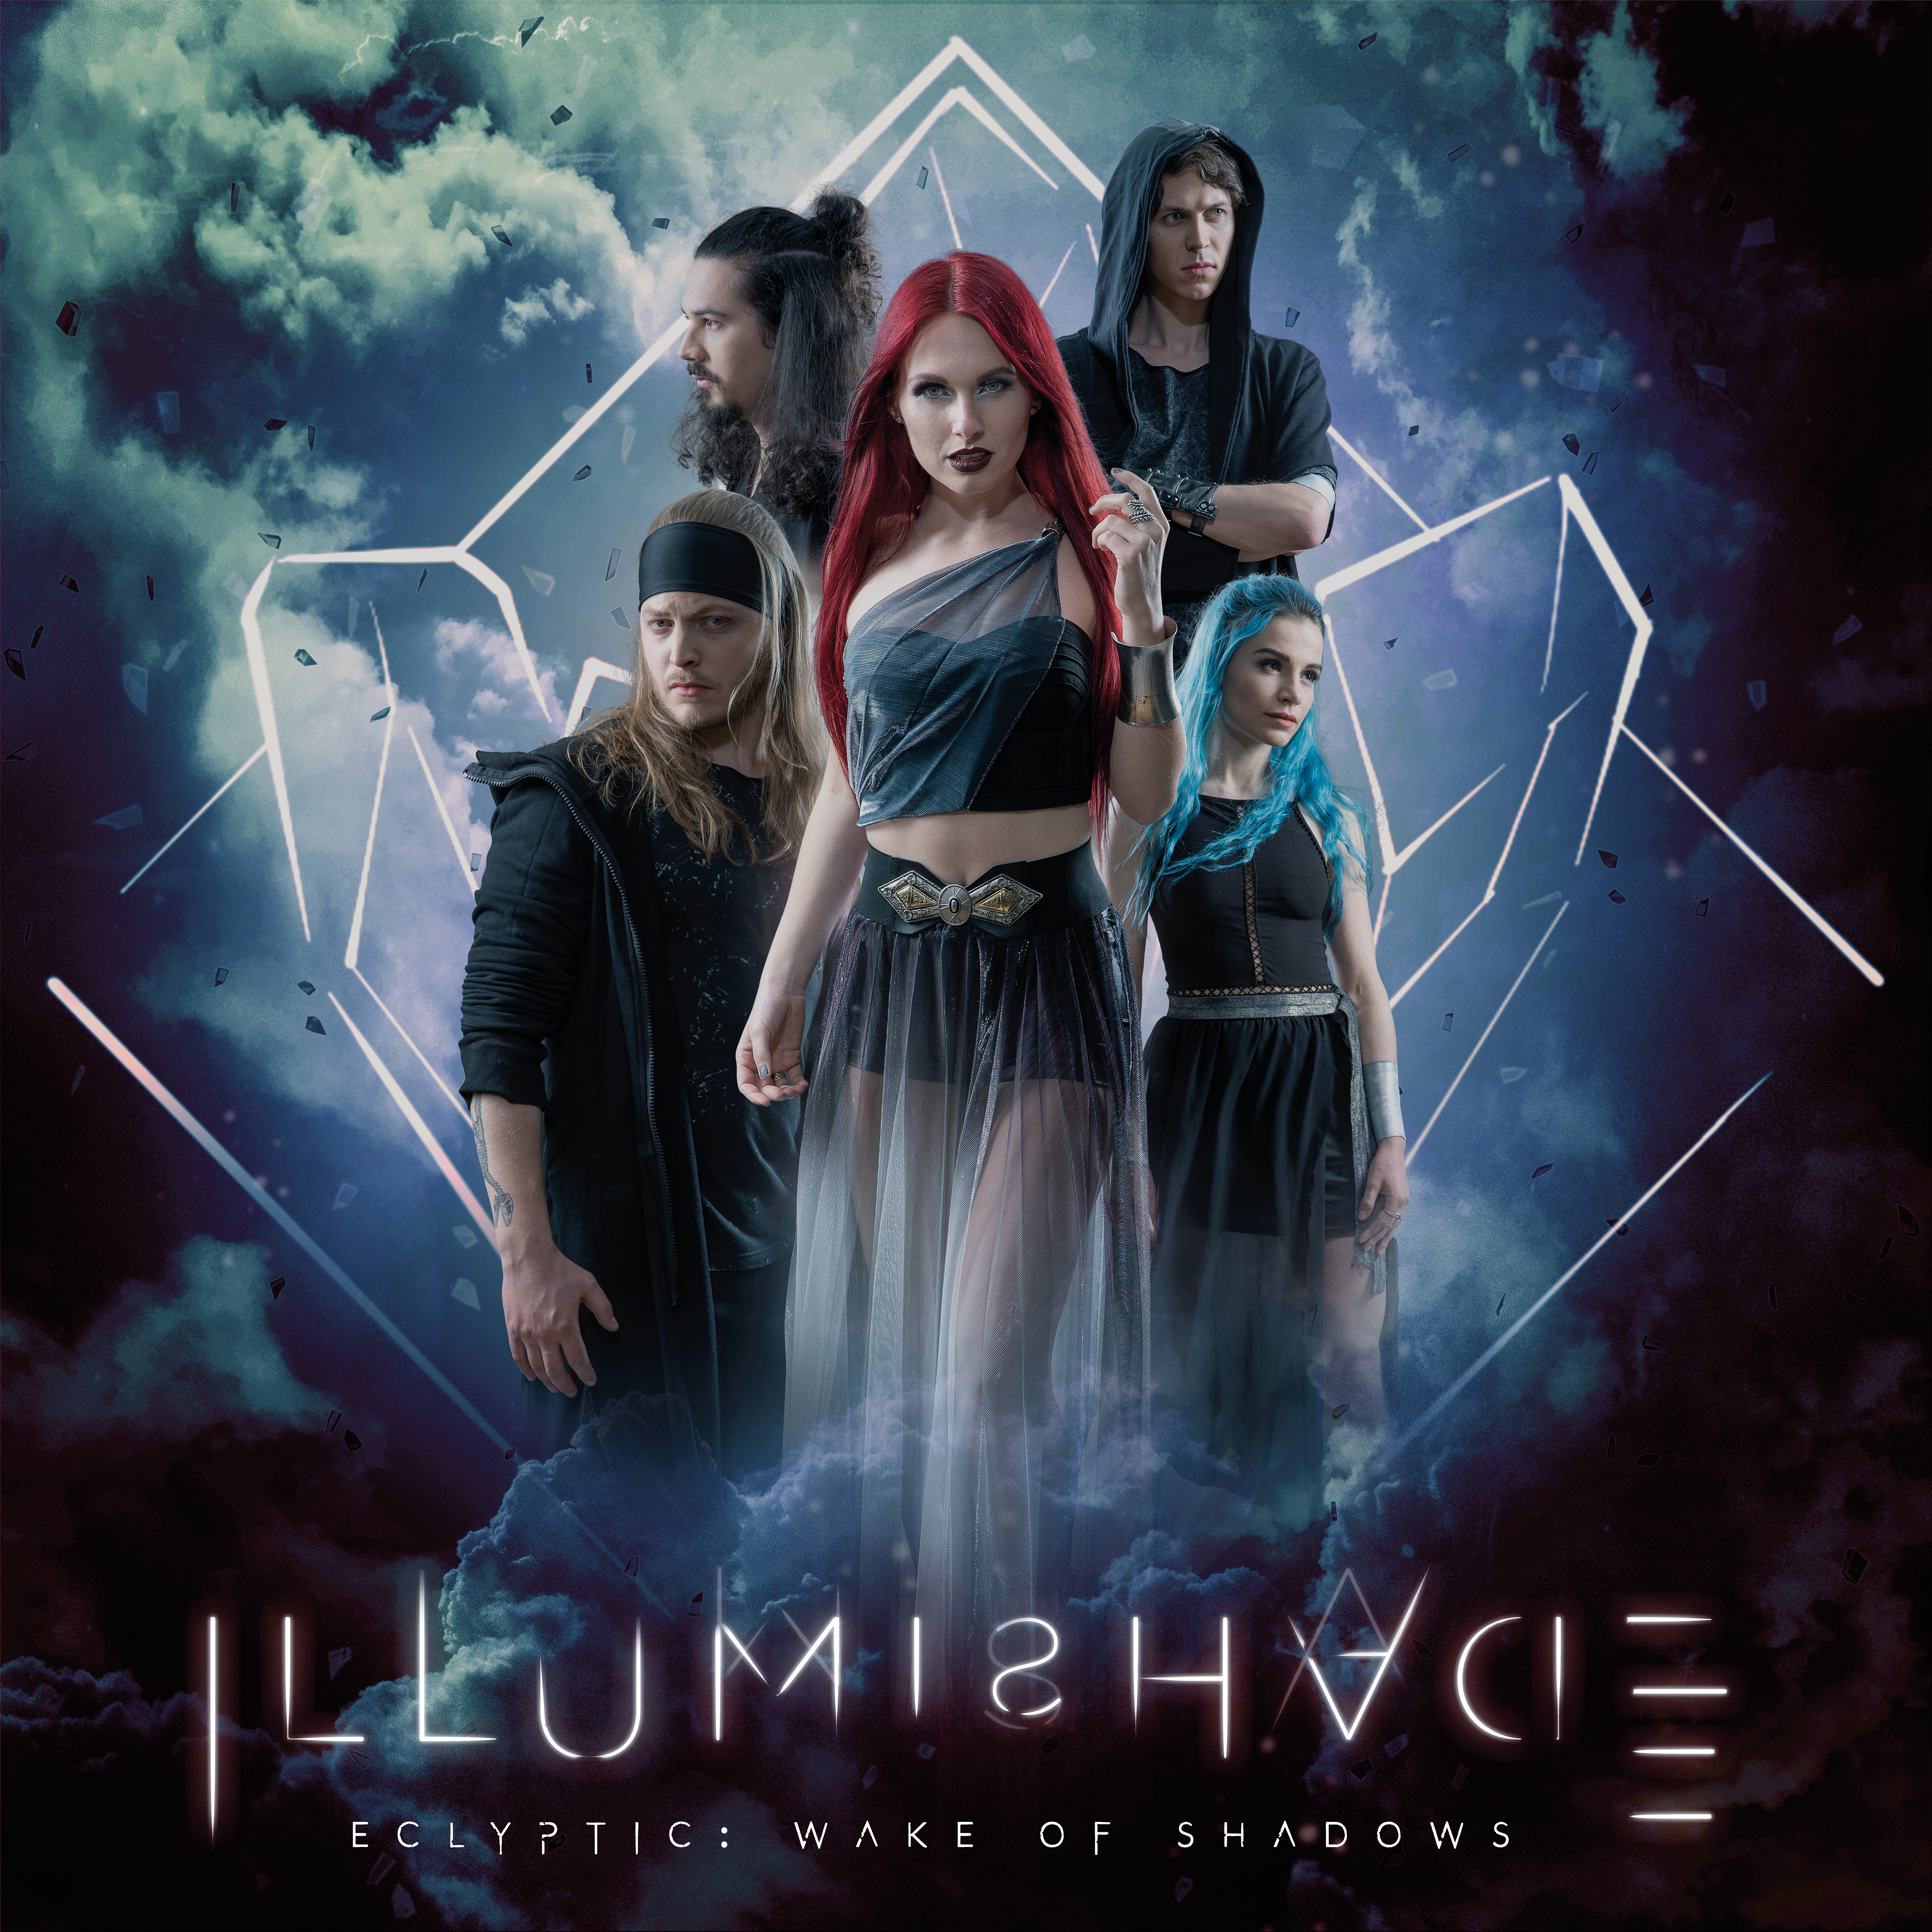 illumishade-eclyptic-wake-of-shadows-metal-musical-album-review